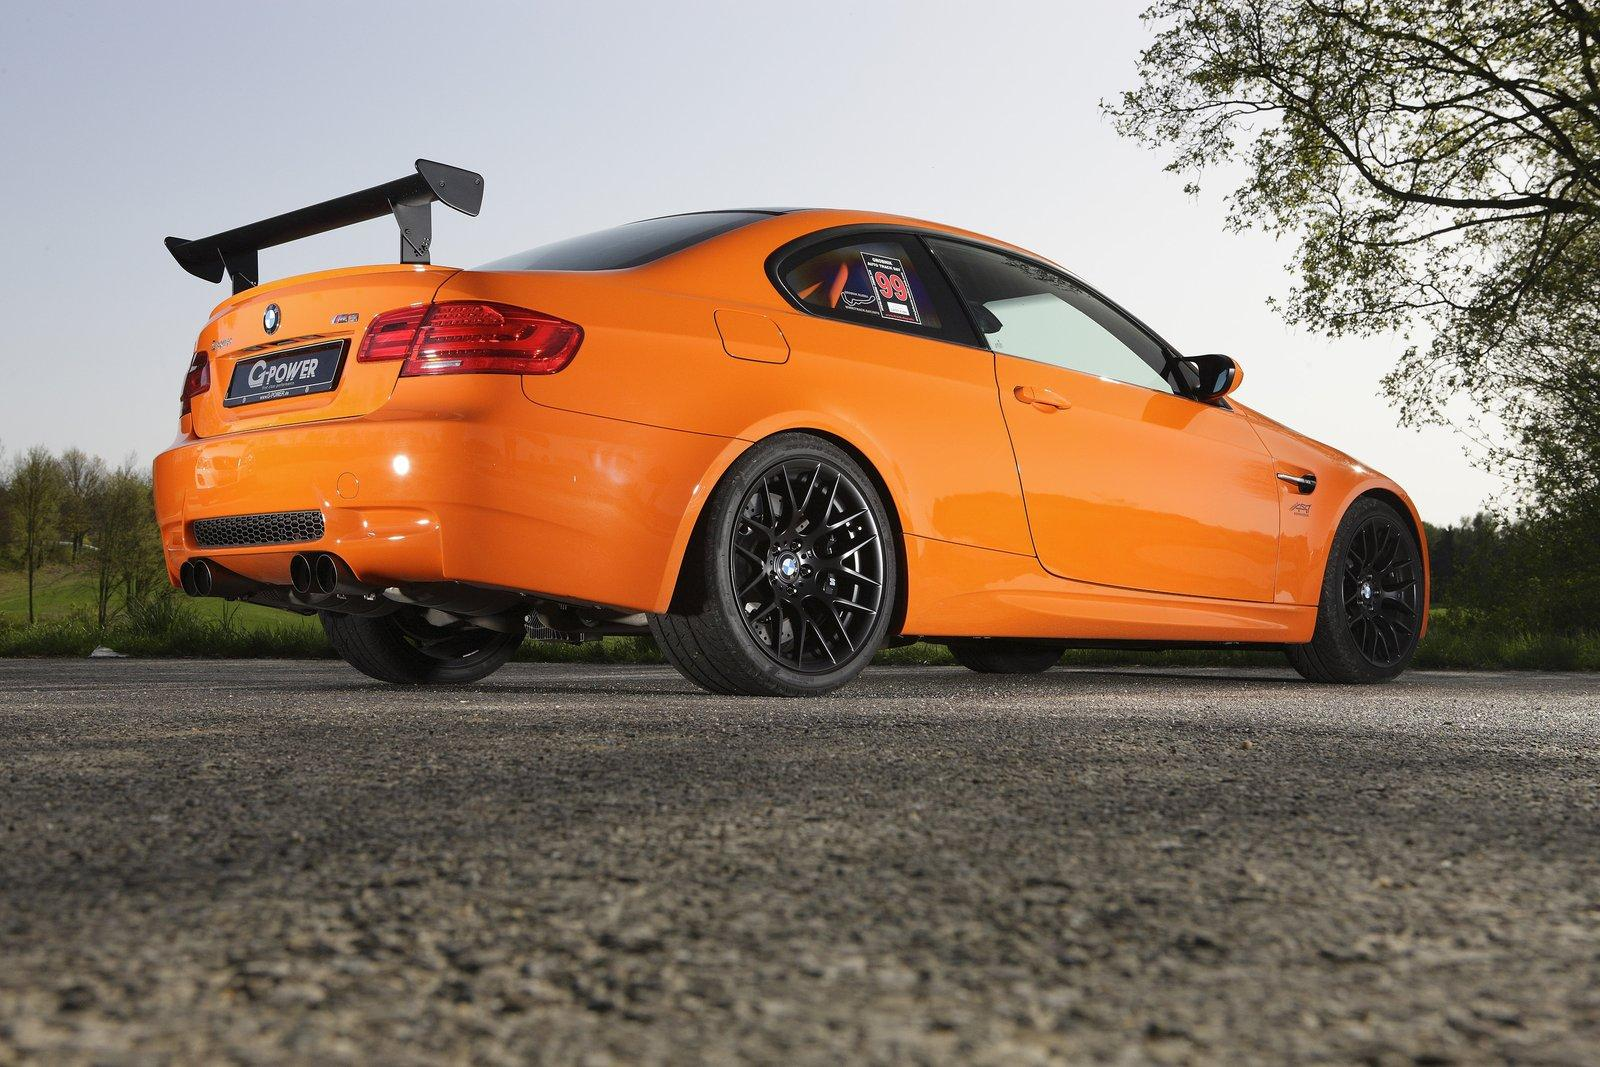 http://www.automobilesreview.com/img/g-power-bmw-m3-gts-sk-ii/g-power-bmw-m3-gts-sk-ii-07.jpg